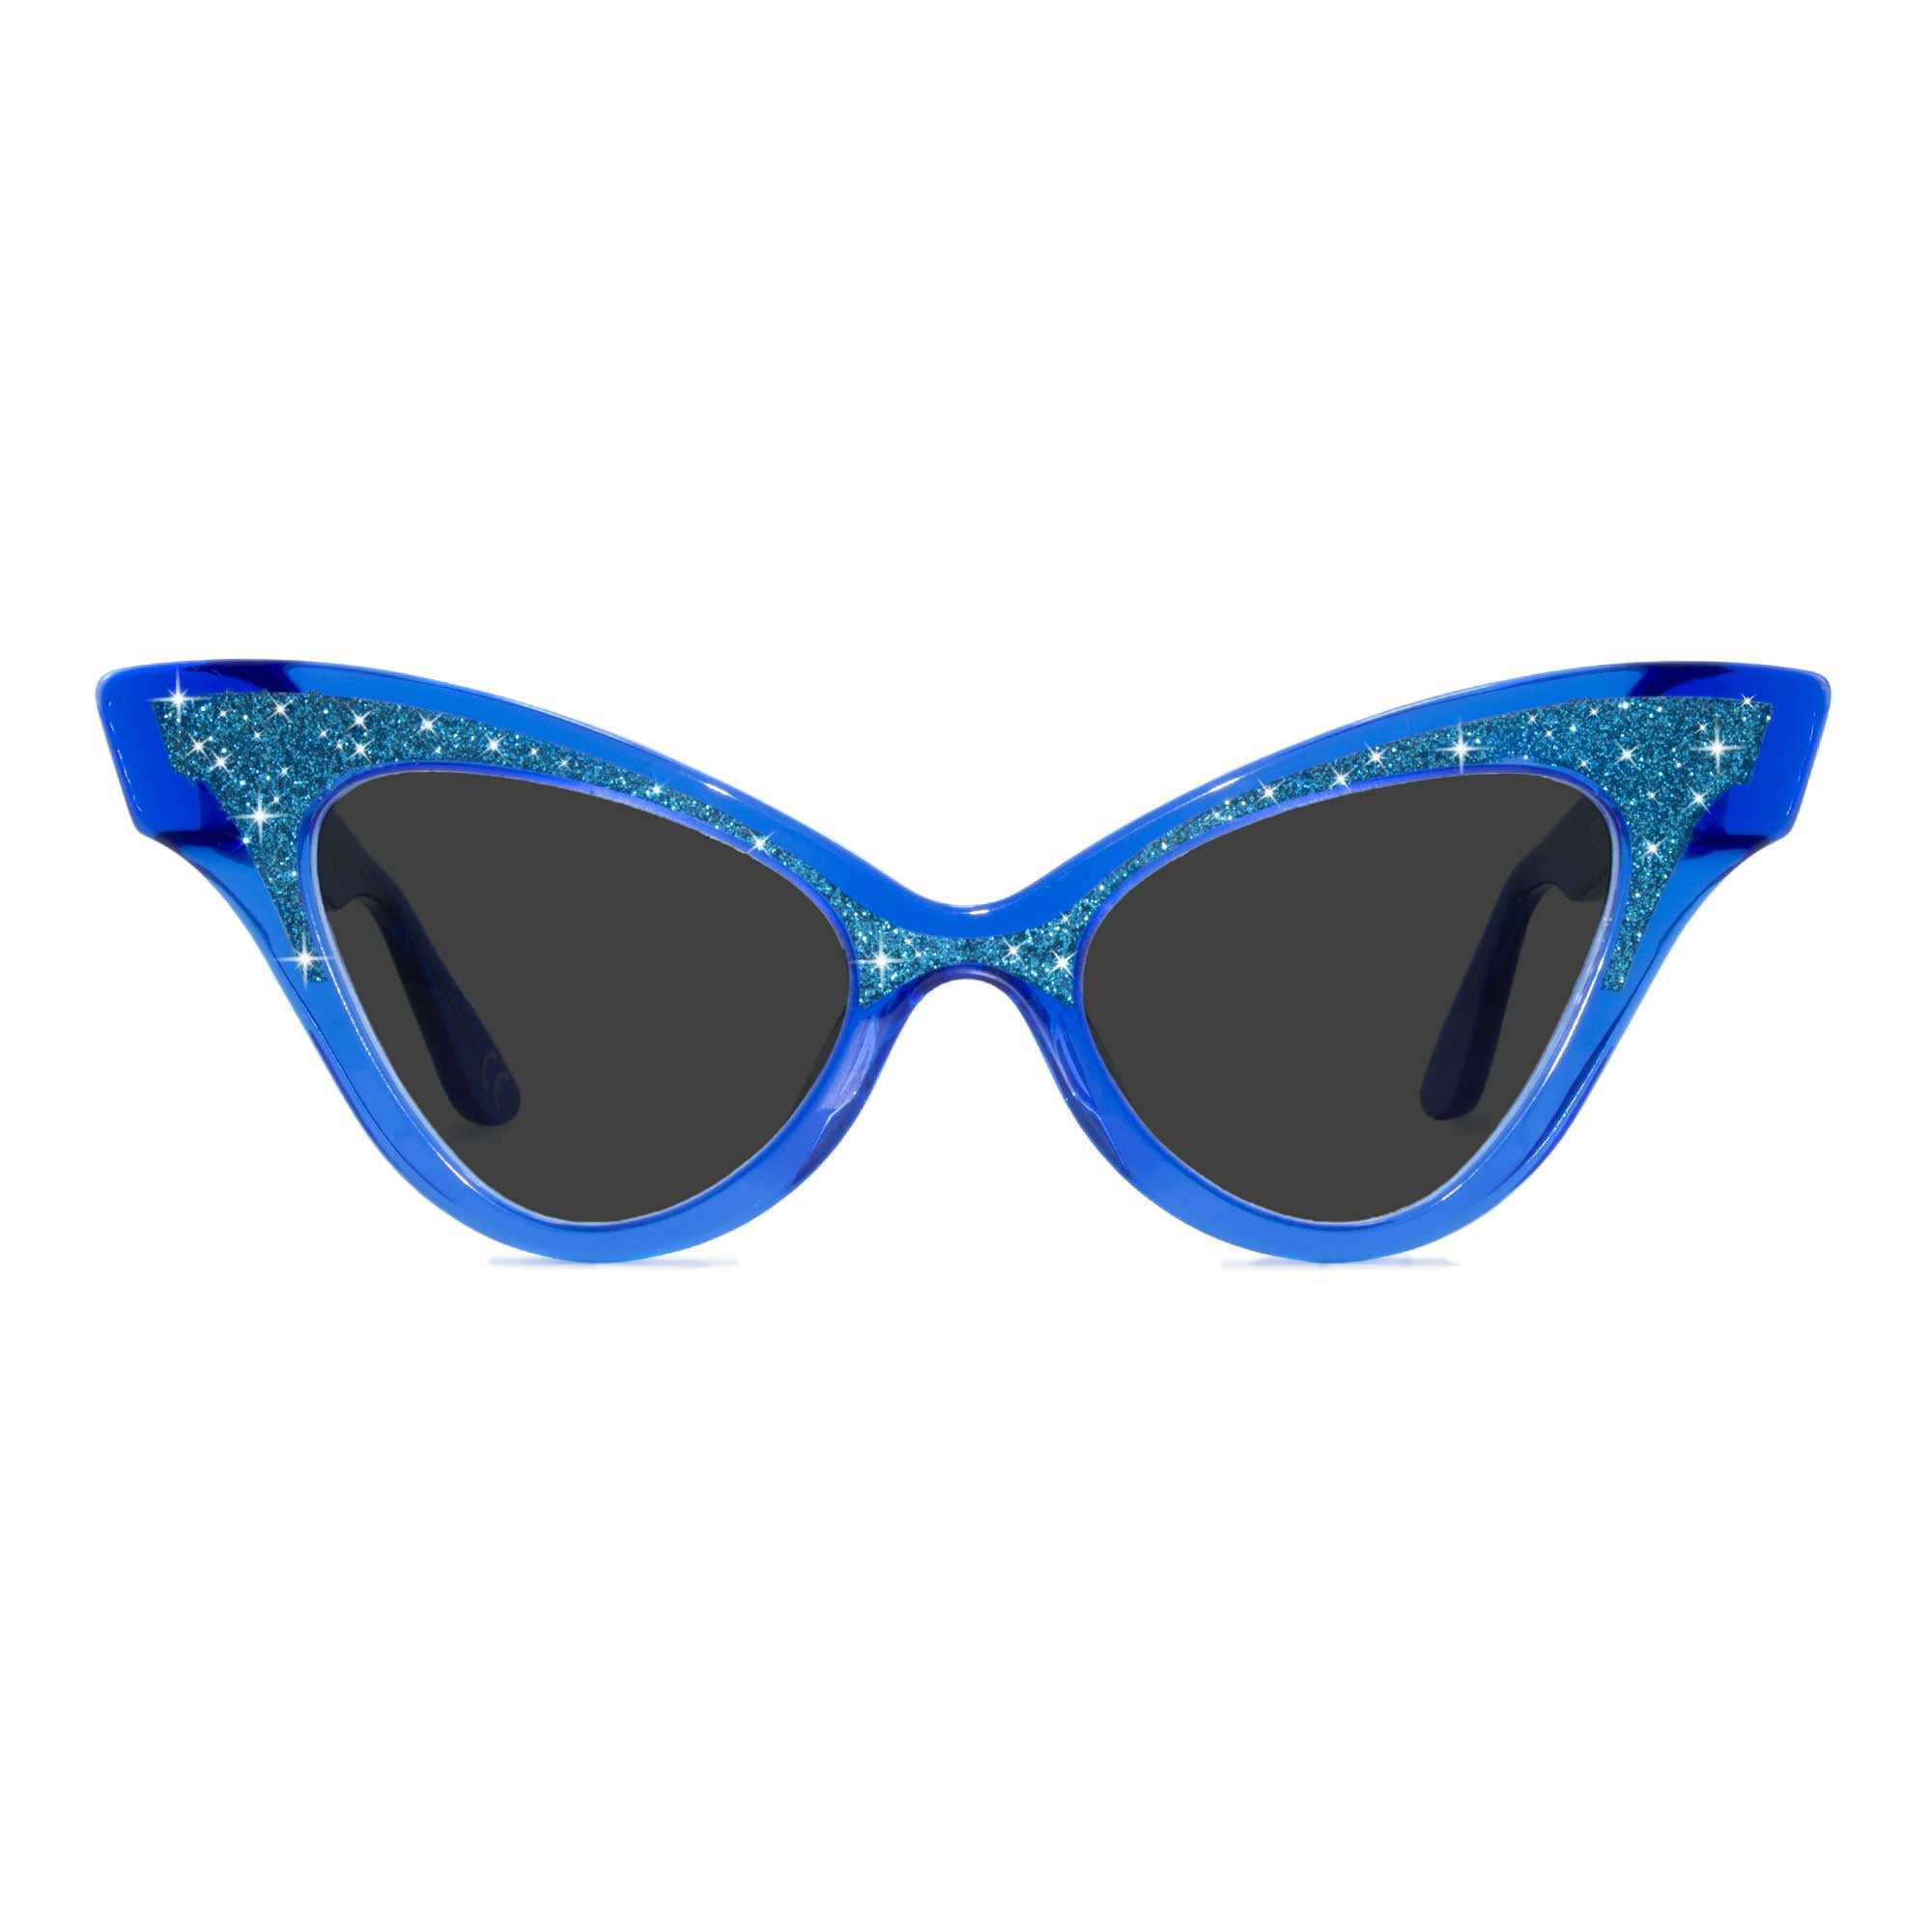 clear blue winged cat eye sunglasses